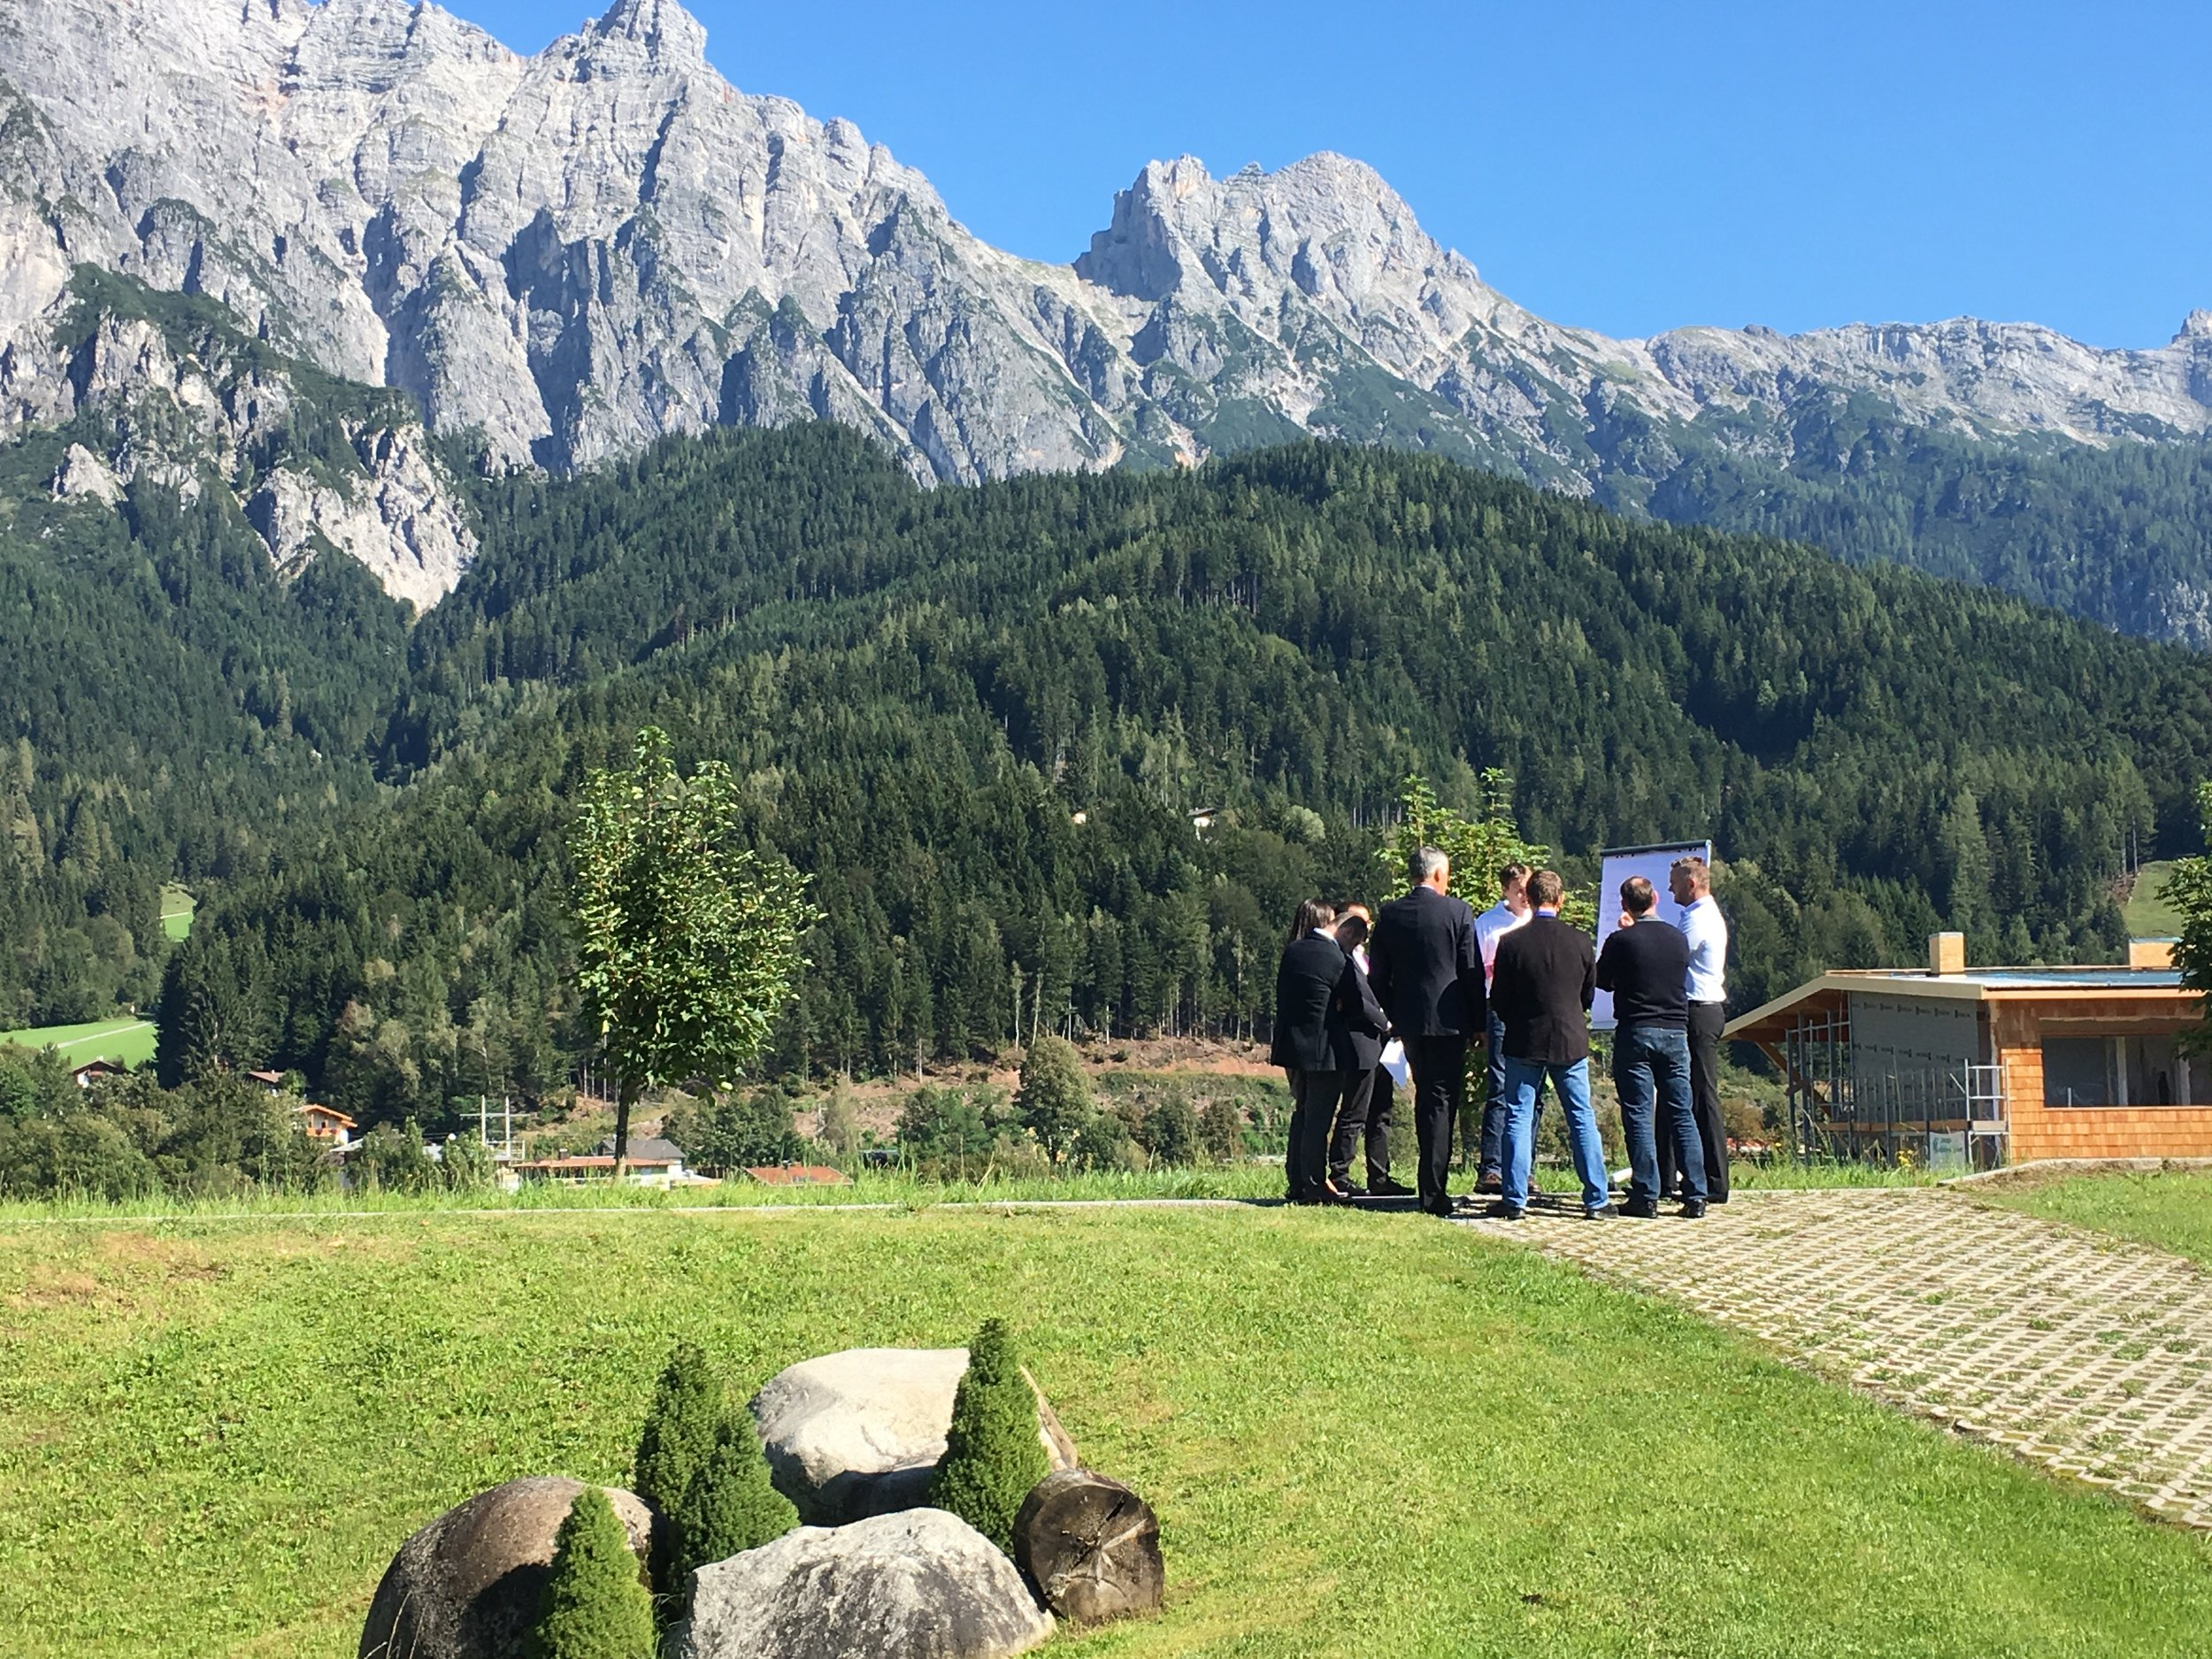 An outdoor working session at one of our recent workshops in Austria.